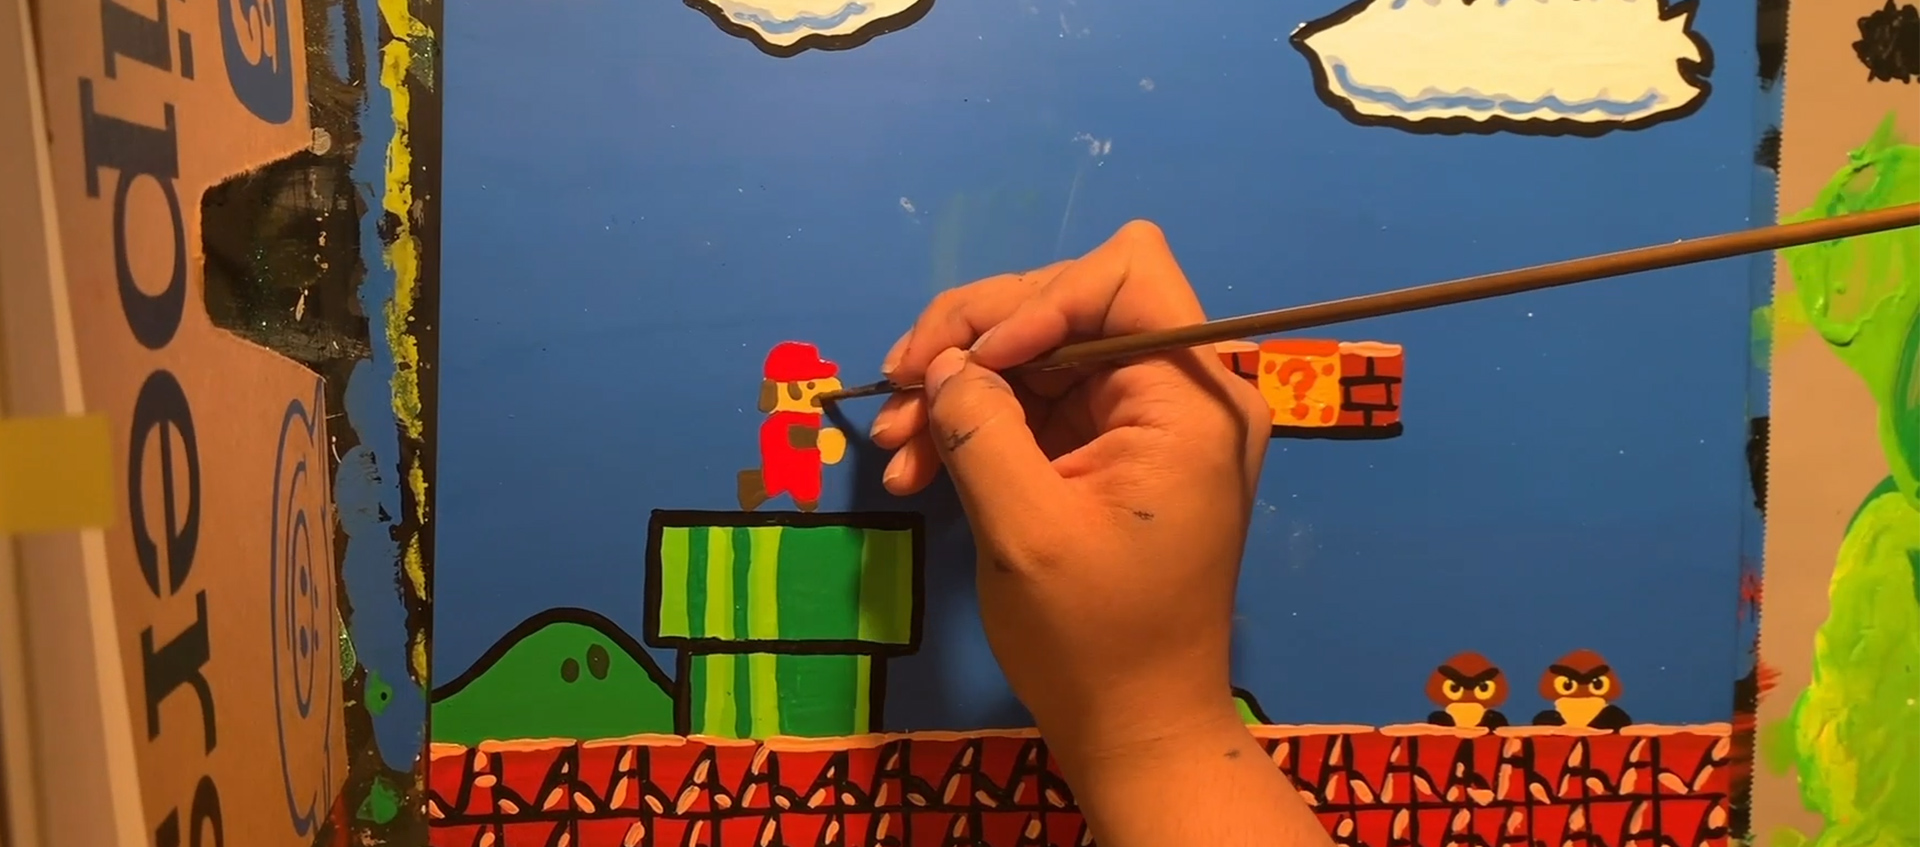 Artist Bethani Blake paints a miniature environment inspired by Original Mario Bros videogame